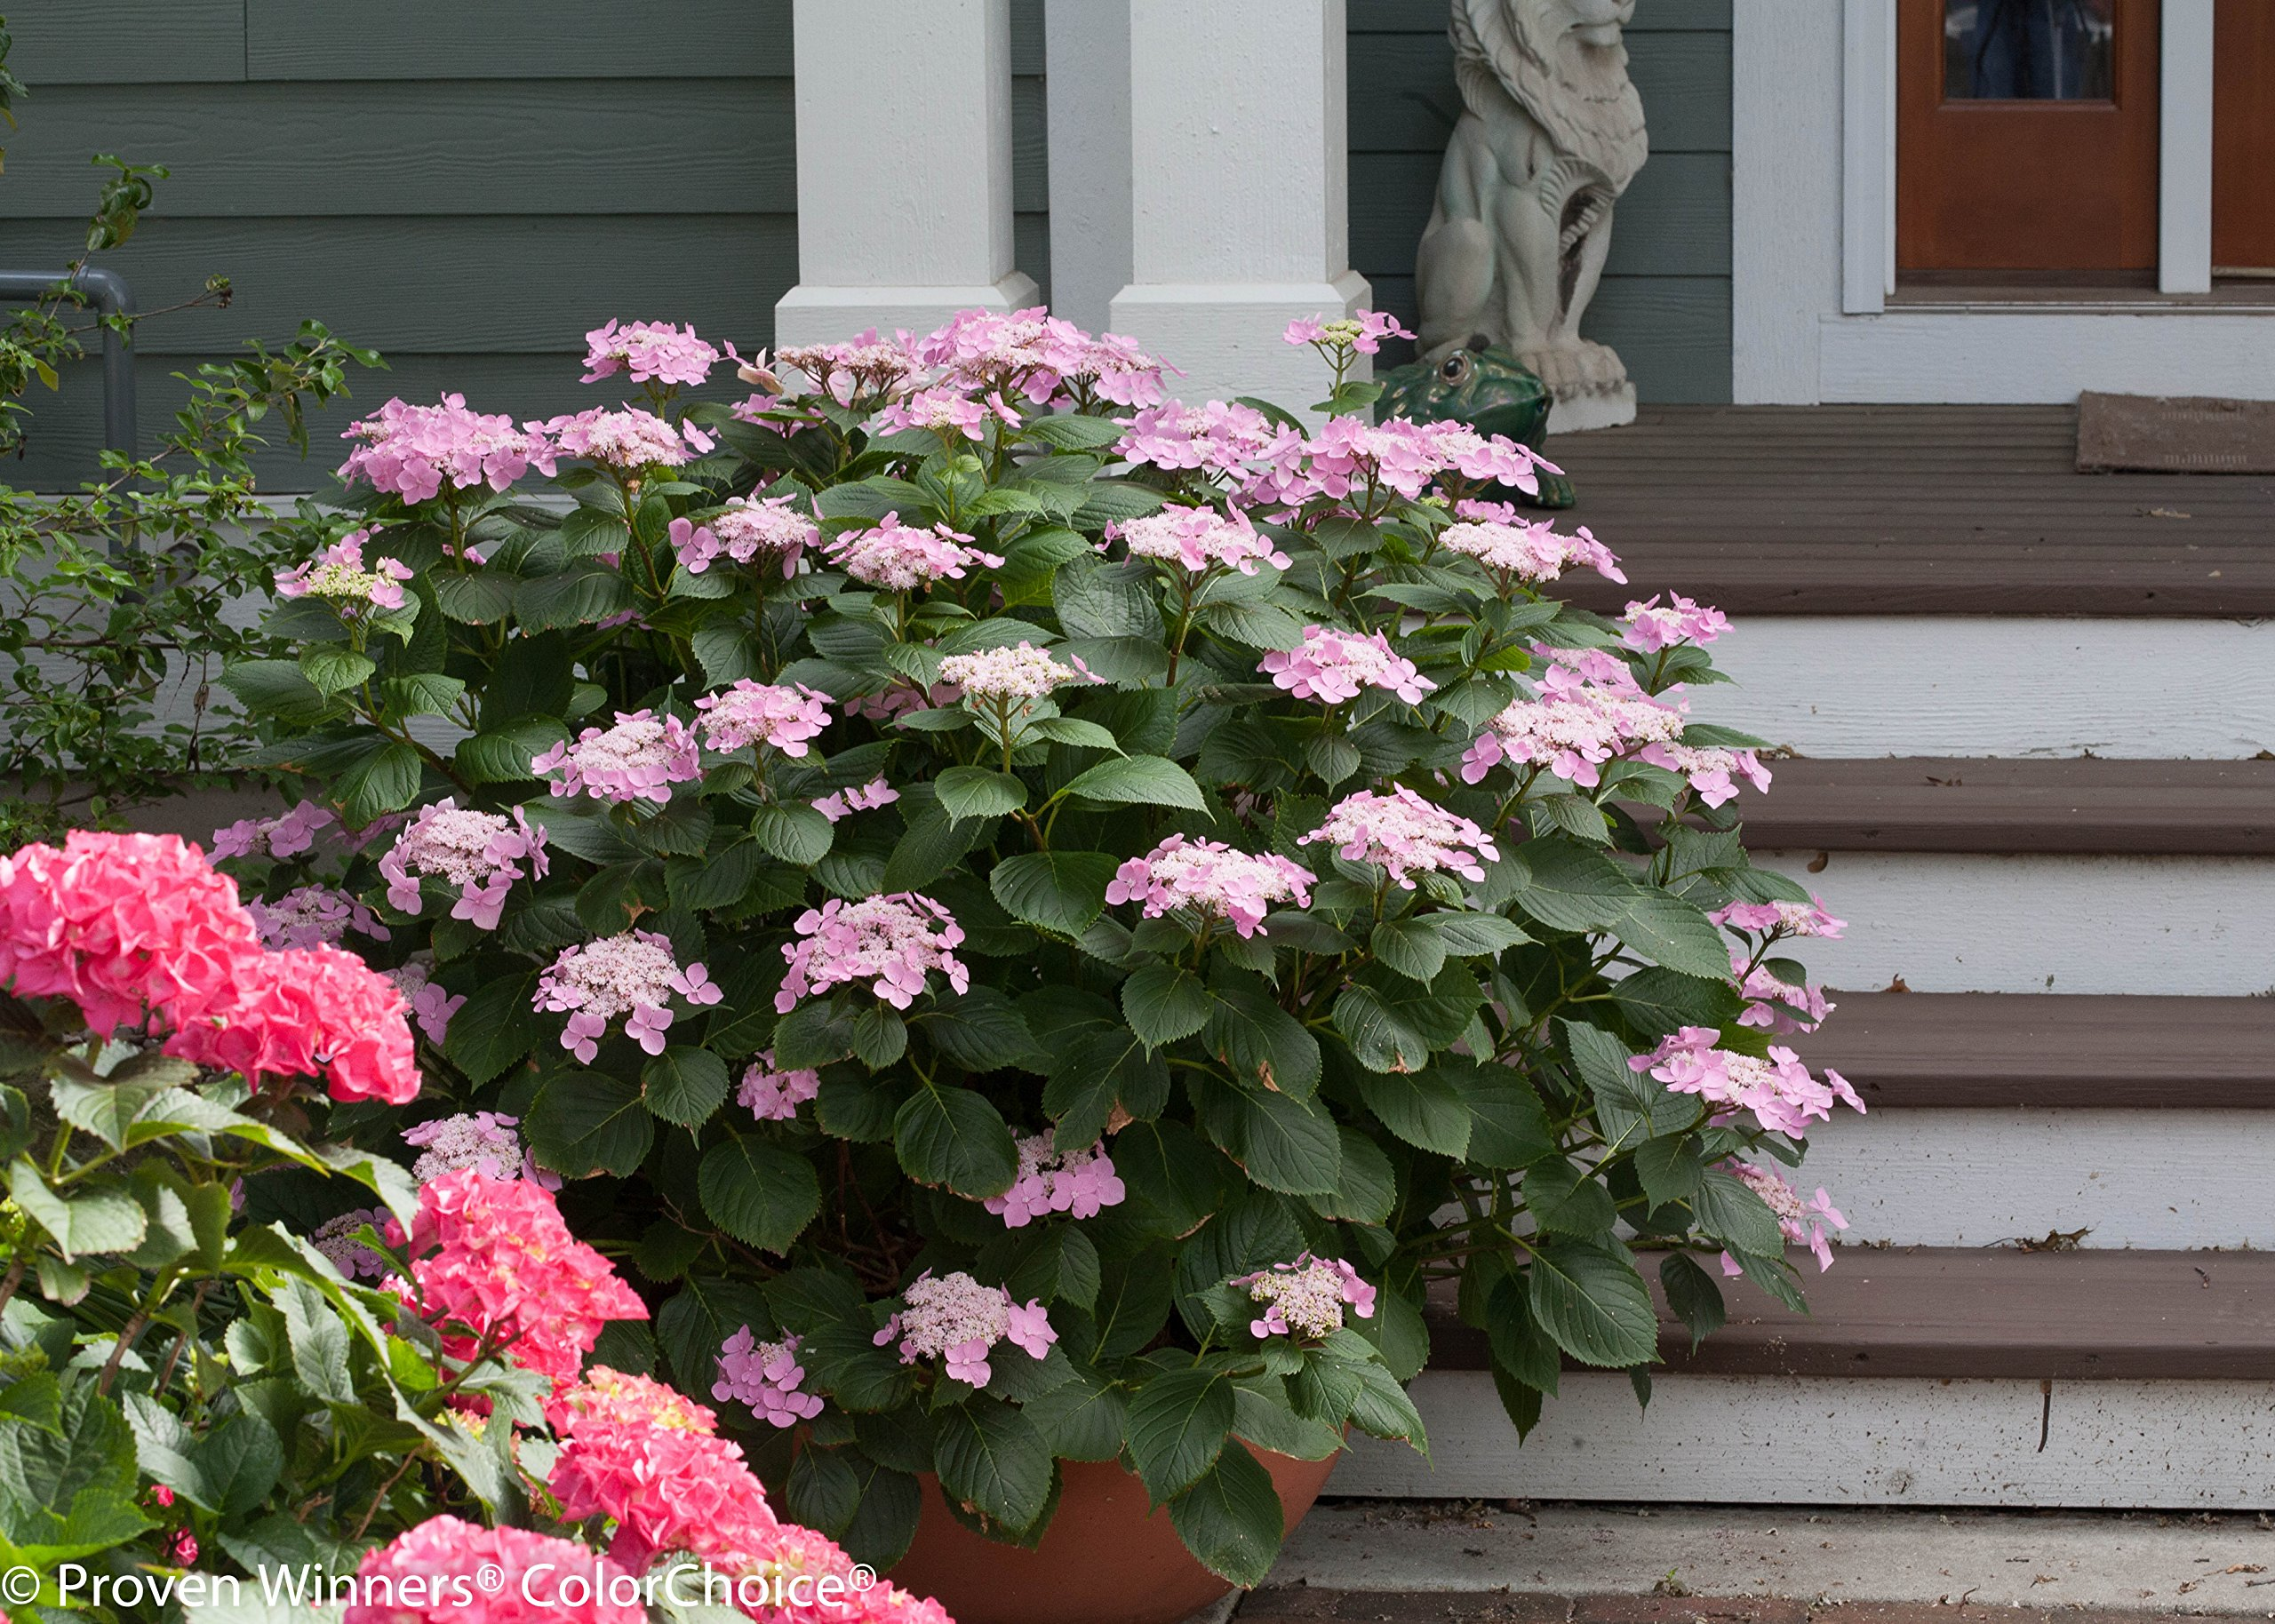 1 Gal. Let's Dance Starlight Bigleaf Hydrangea (Macrophylla) Live Shrub, Blue or Pink Flowers by Proven Winners (Image #7)